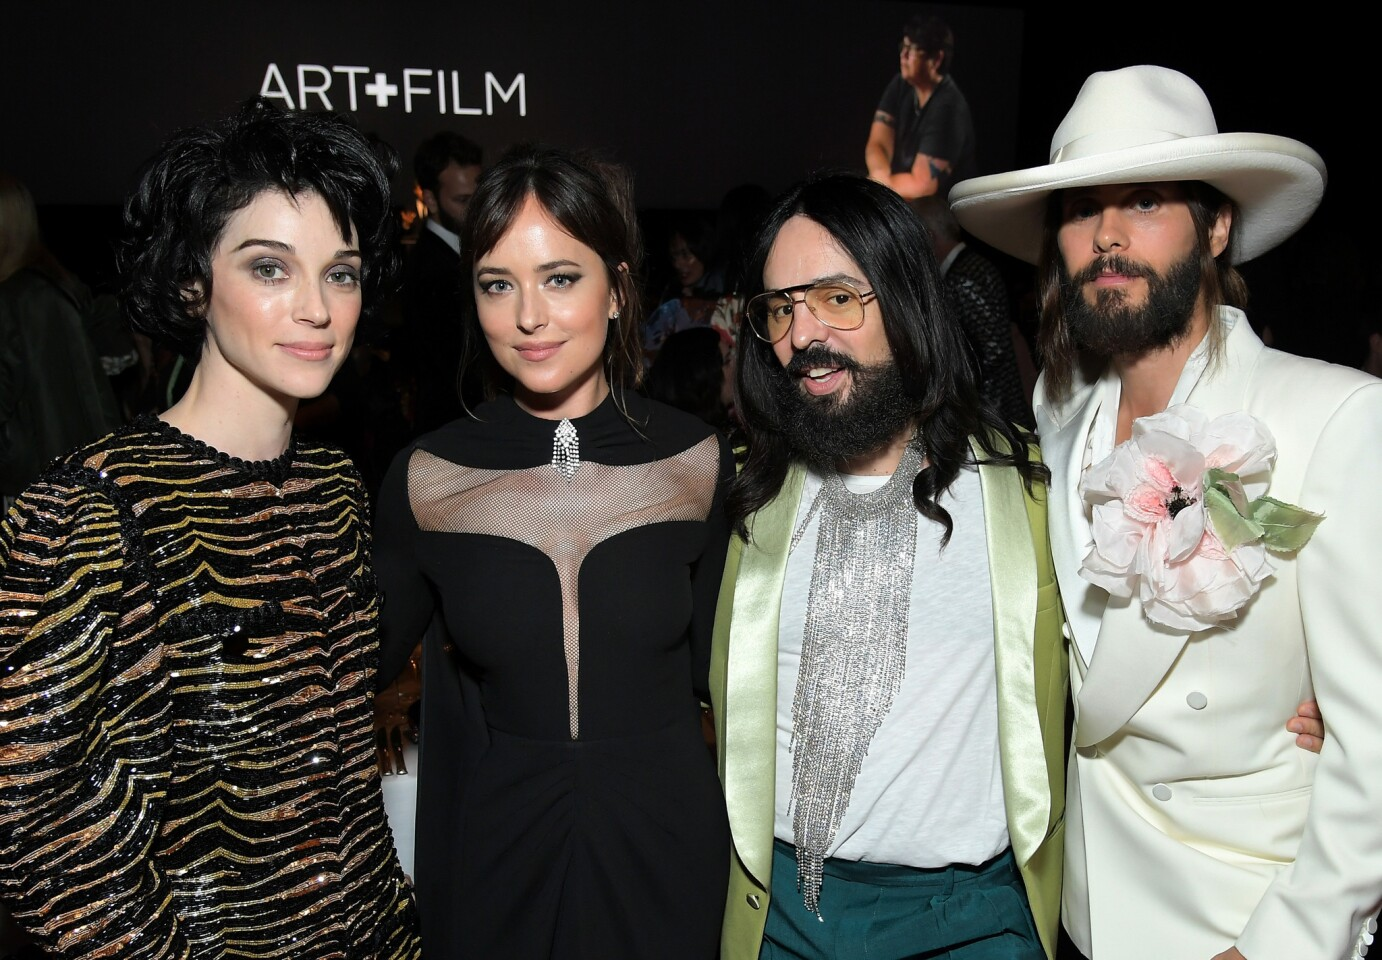 St. Vincent, from left, Dakota Johnson, Gucci Creative Director Alessandro Michele and Jared Leto -- all in Gucci -- at the 2018 LACMA Art+Film Gala honoring Catherine Opie and Guillermo del Toro on Nov. 3.